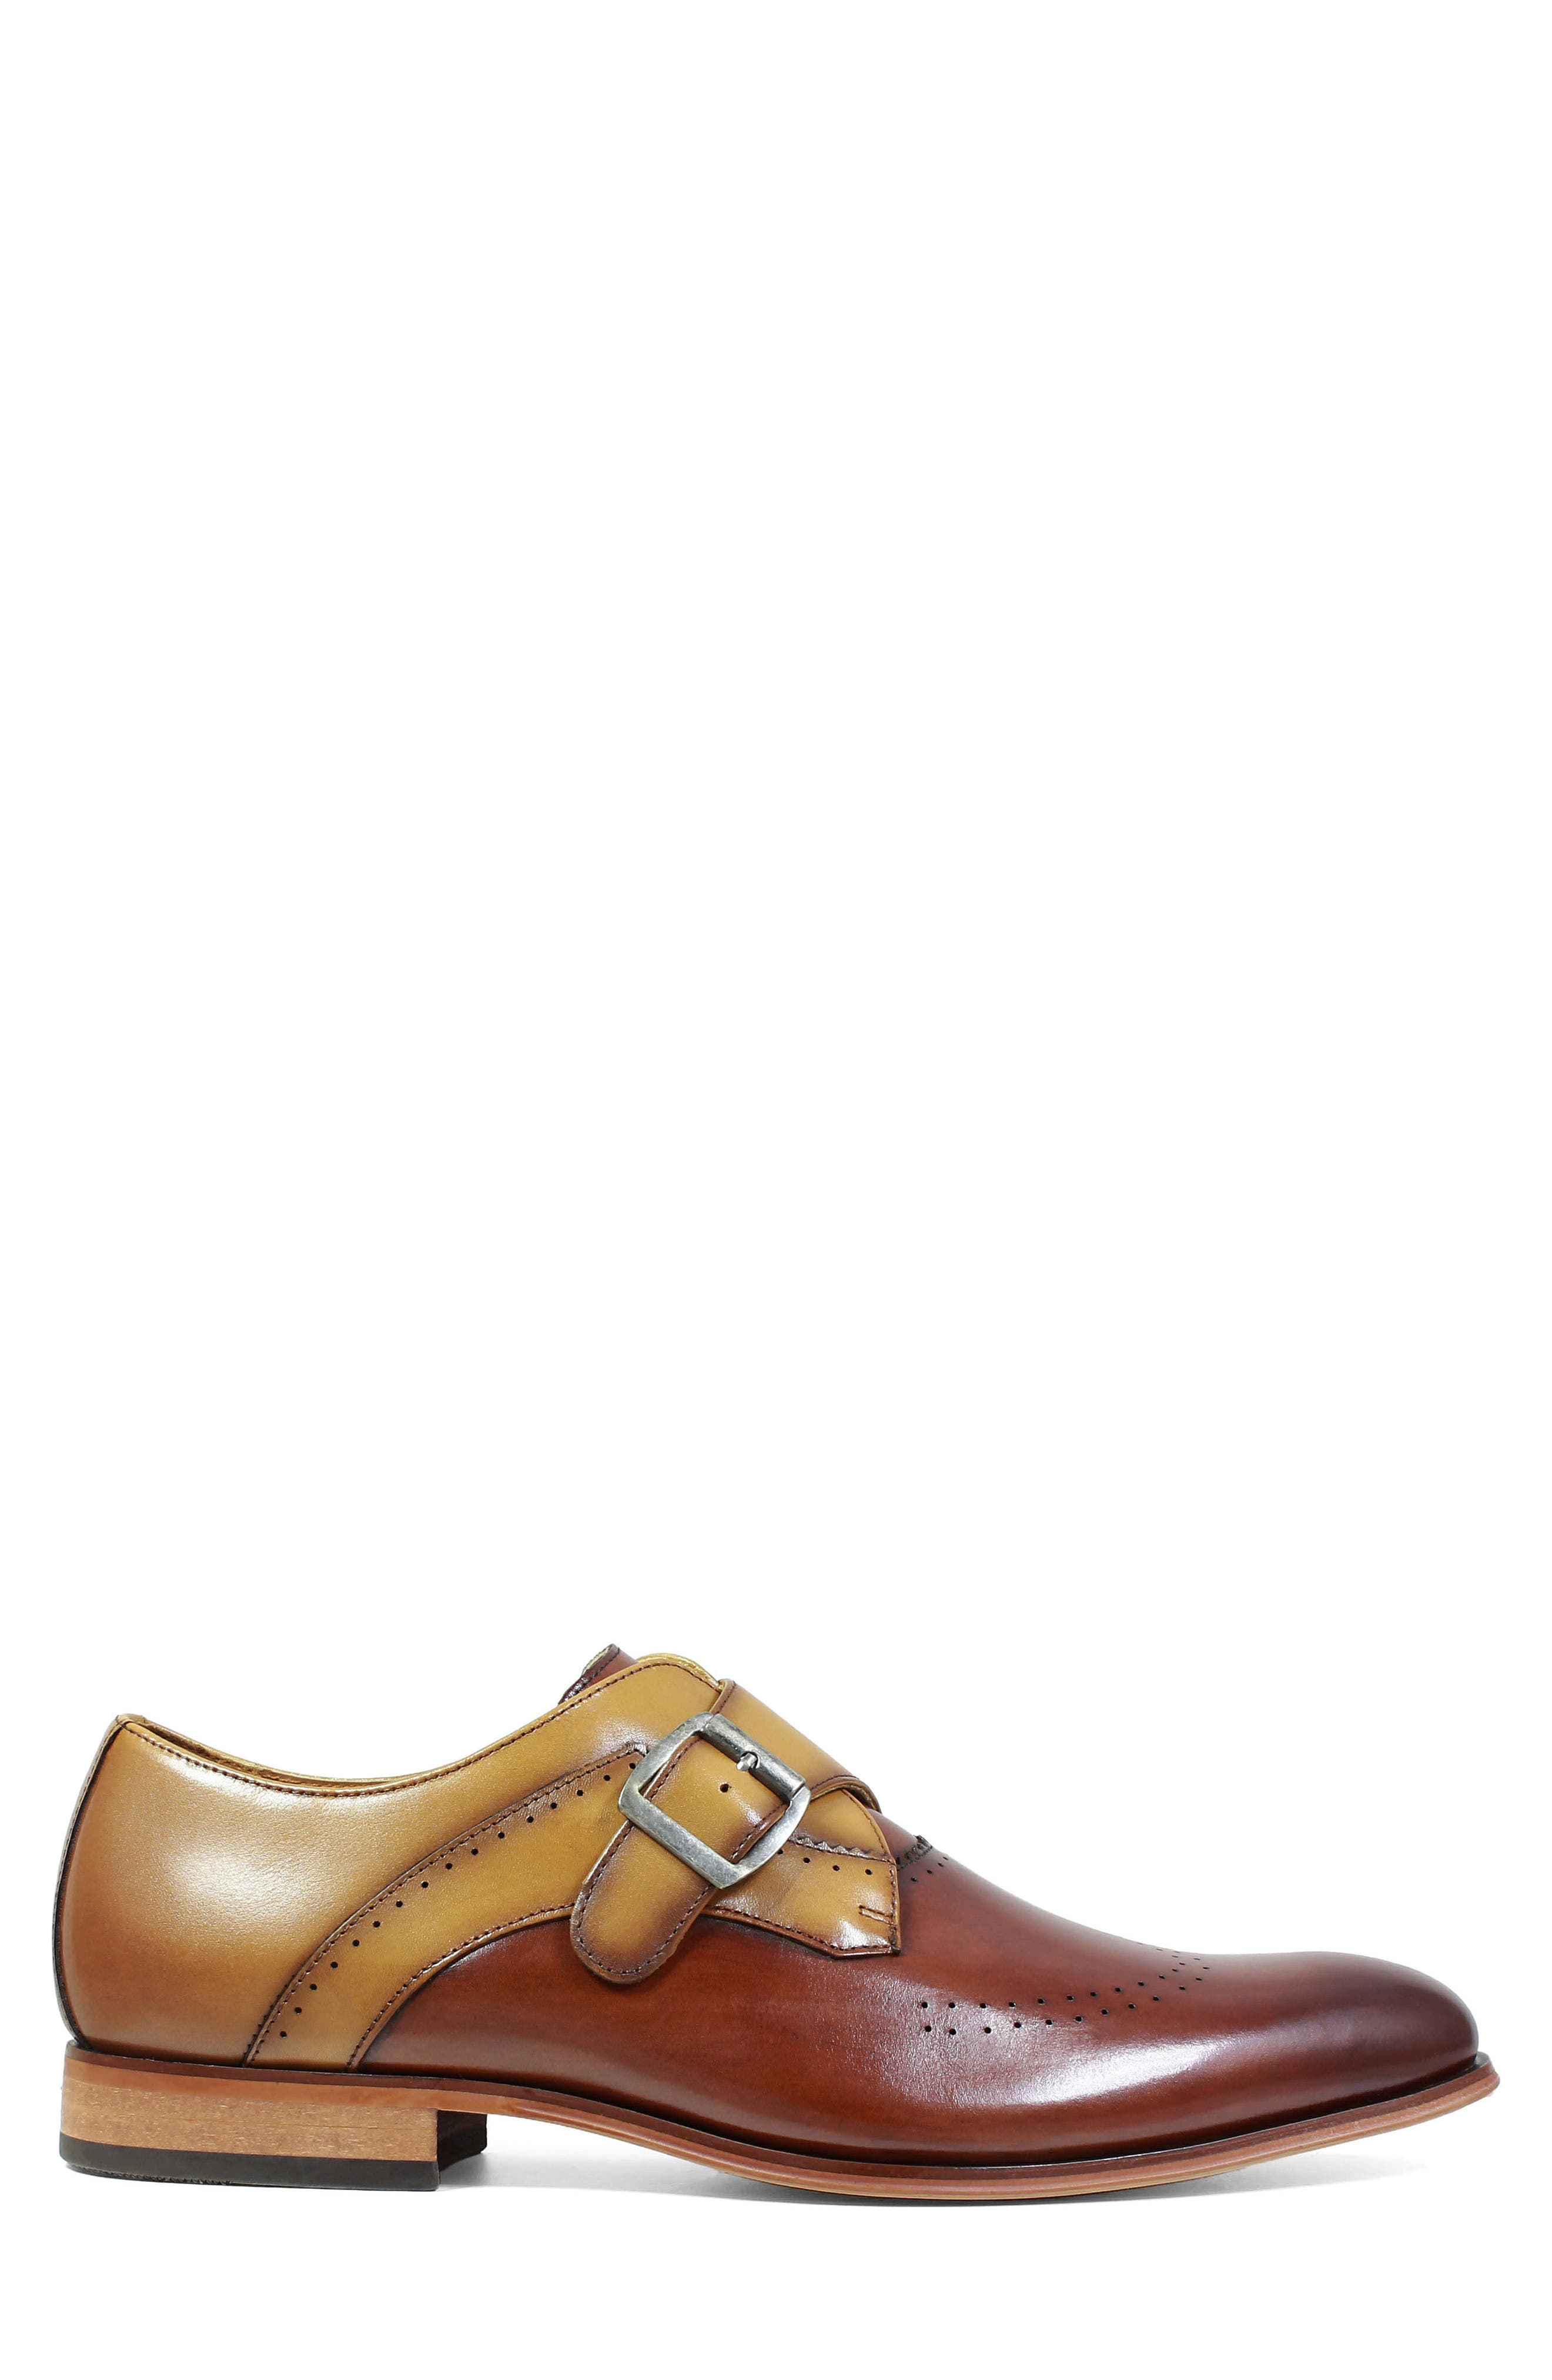 STACY ADAMS, Saxton Perforated Monk Strap Shoe, Alternate thumbnail 3, color, 201